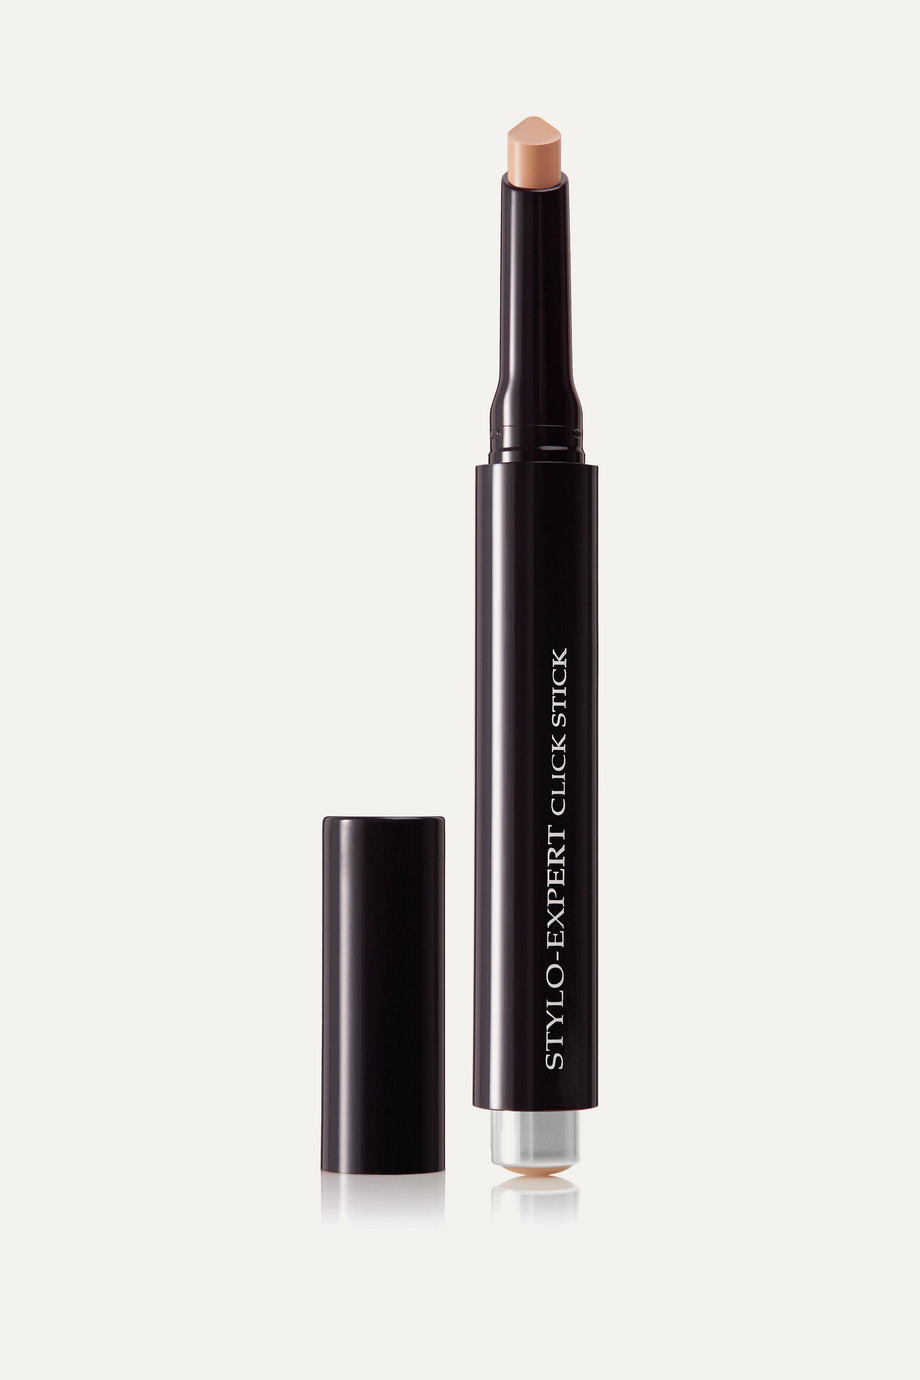 BY TERRY Stylo-Expert Hybrid Foundation Concealer - Amber Brown No.11